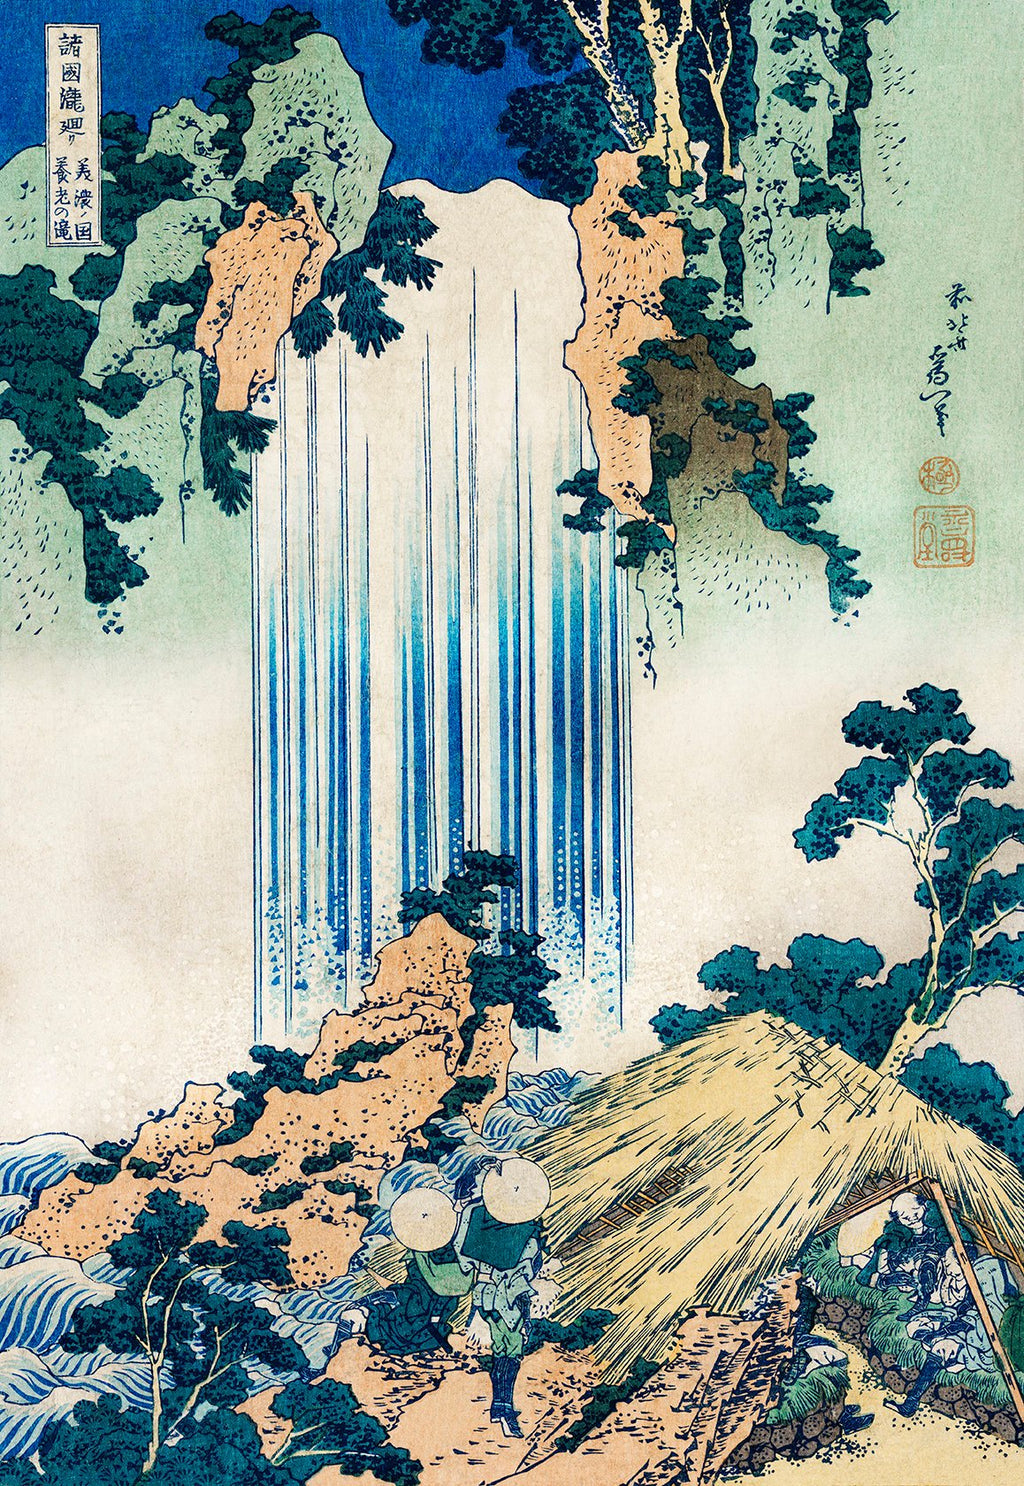 Yoro Waterfall by Hokusai